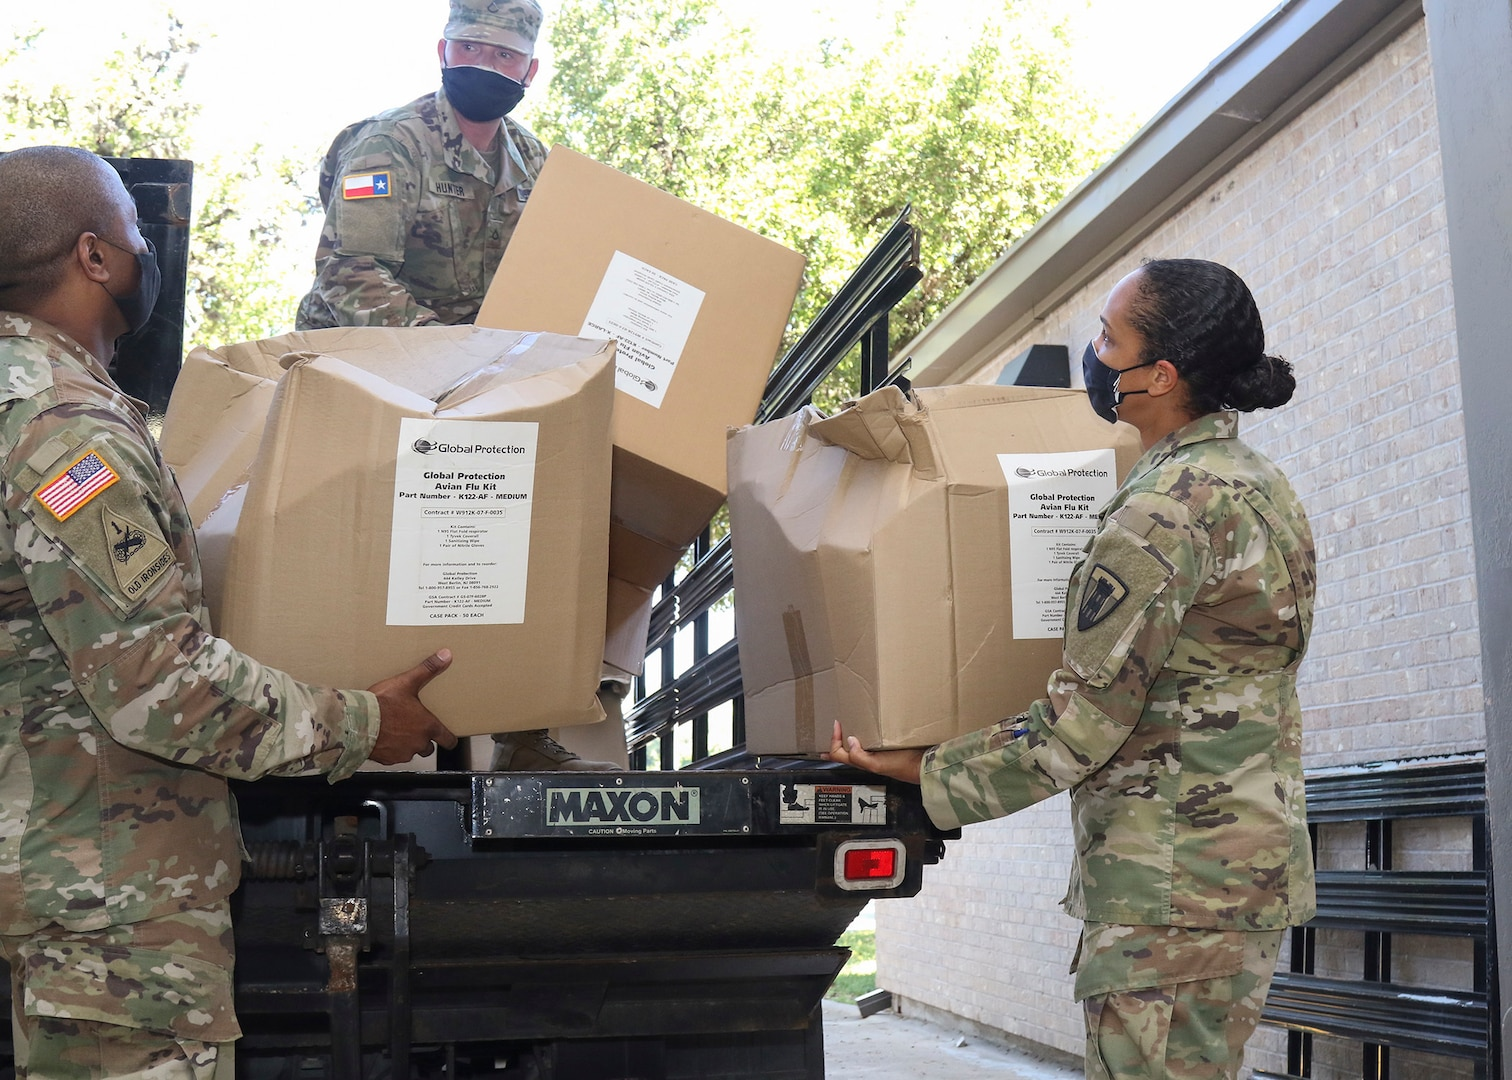 Members of the Texas Military Department's Joint Task Force 176 – Texas State Guard Pfc. Jason Hunter, Texas National Guard Capt. Stephanie Enloe, the task force's medical operations officer, and Sgt. 1st Class Rajendran Kumaraswamy, the task force's medical noncommissioned officer – unload disinfecting kits for Soldiers preparing to support long-term care facility disinfection operations at Camp Mabry in Austin, Texas, May 7, 2020.